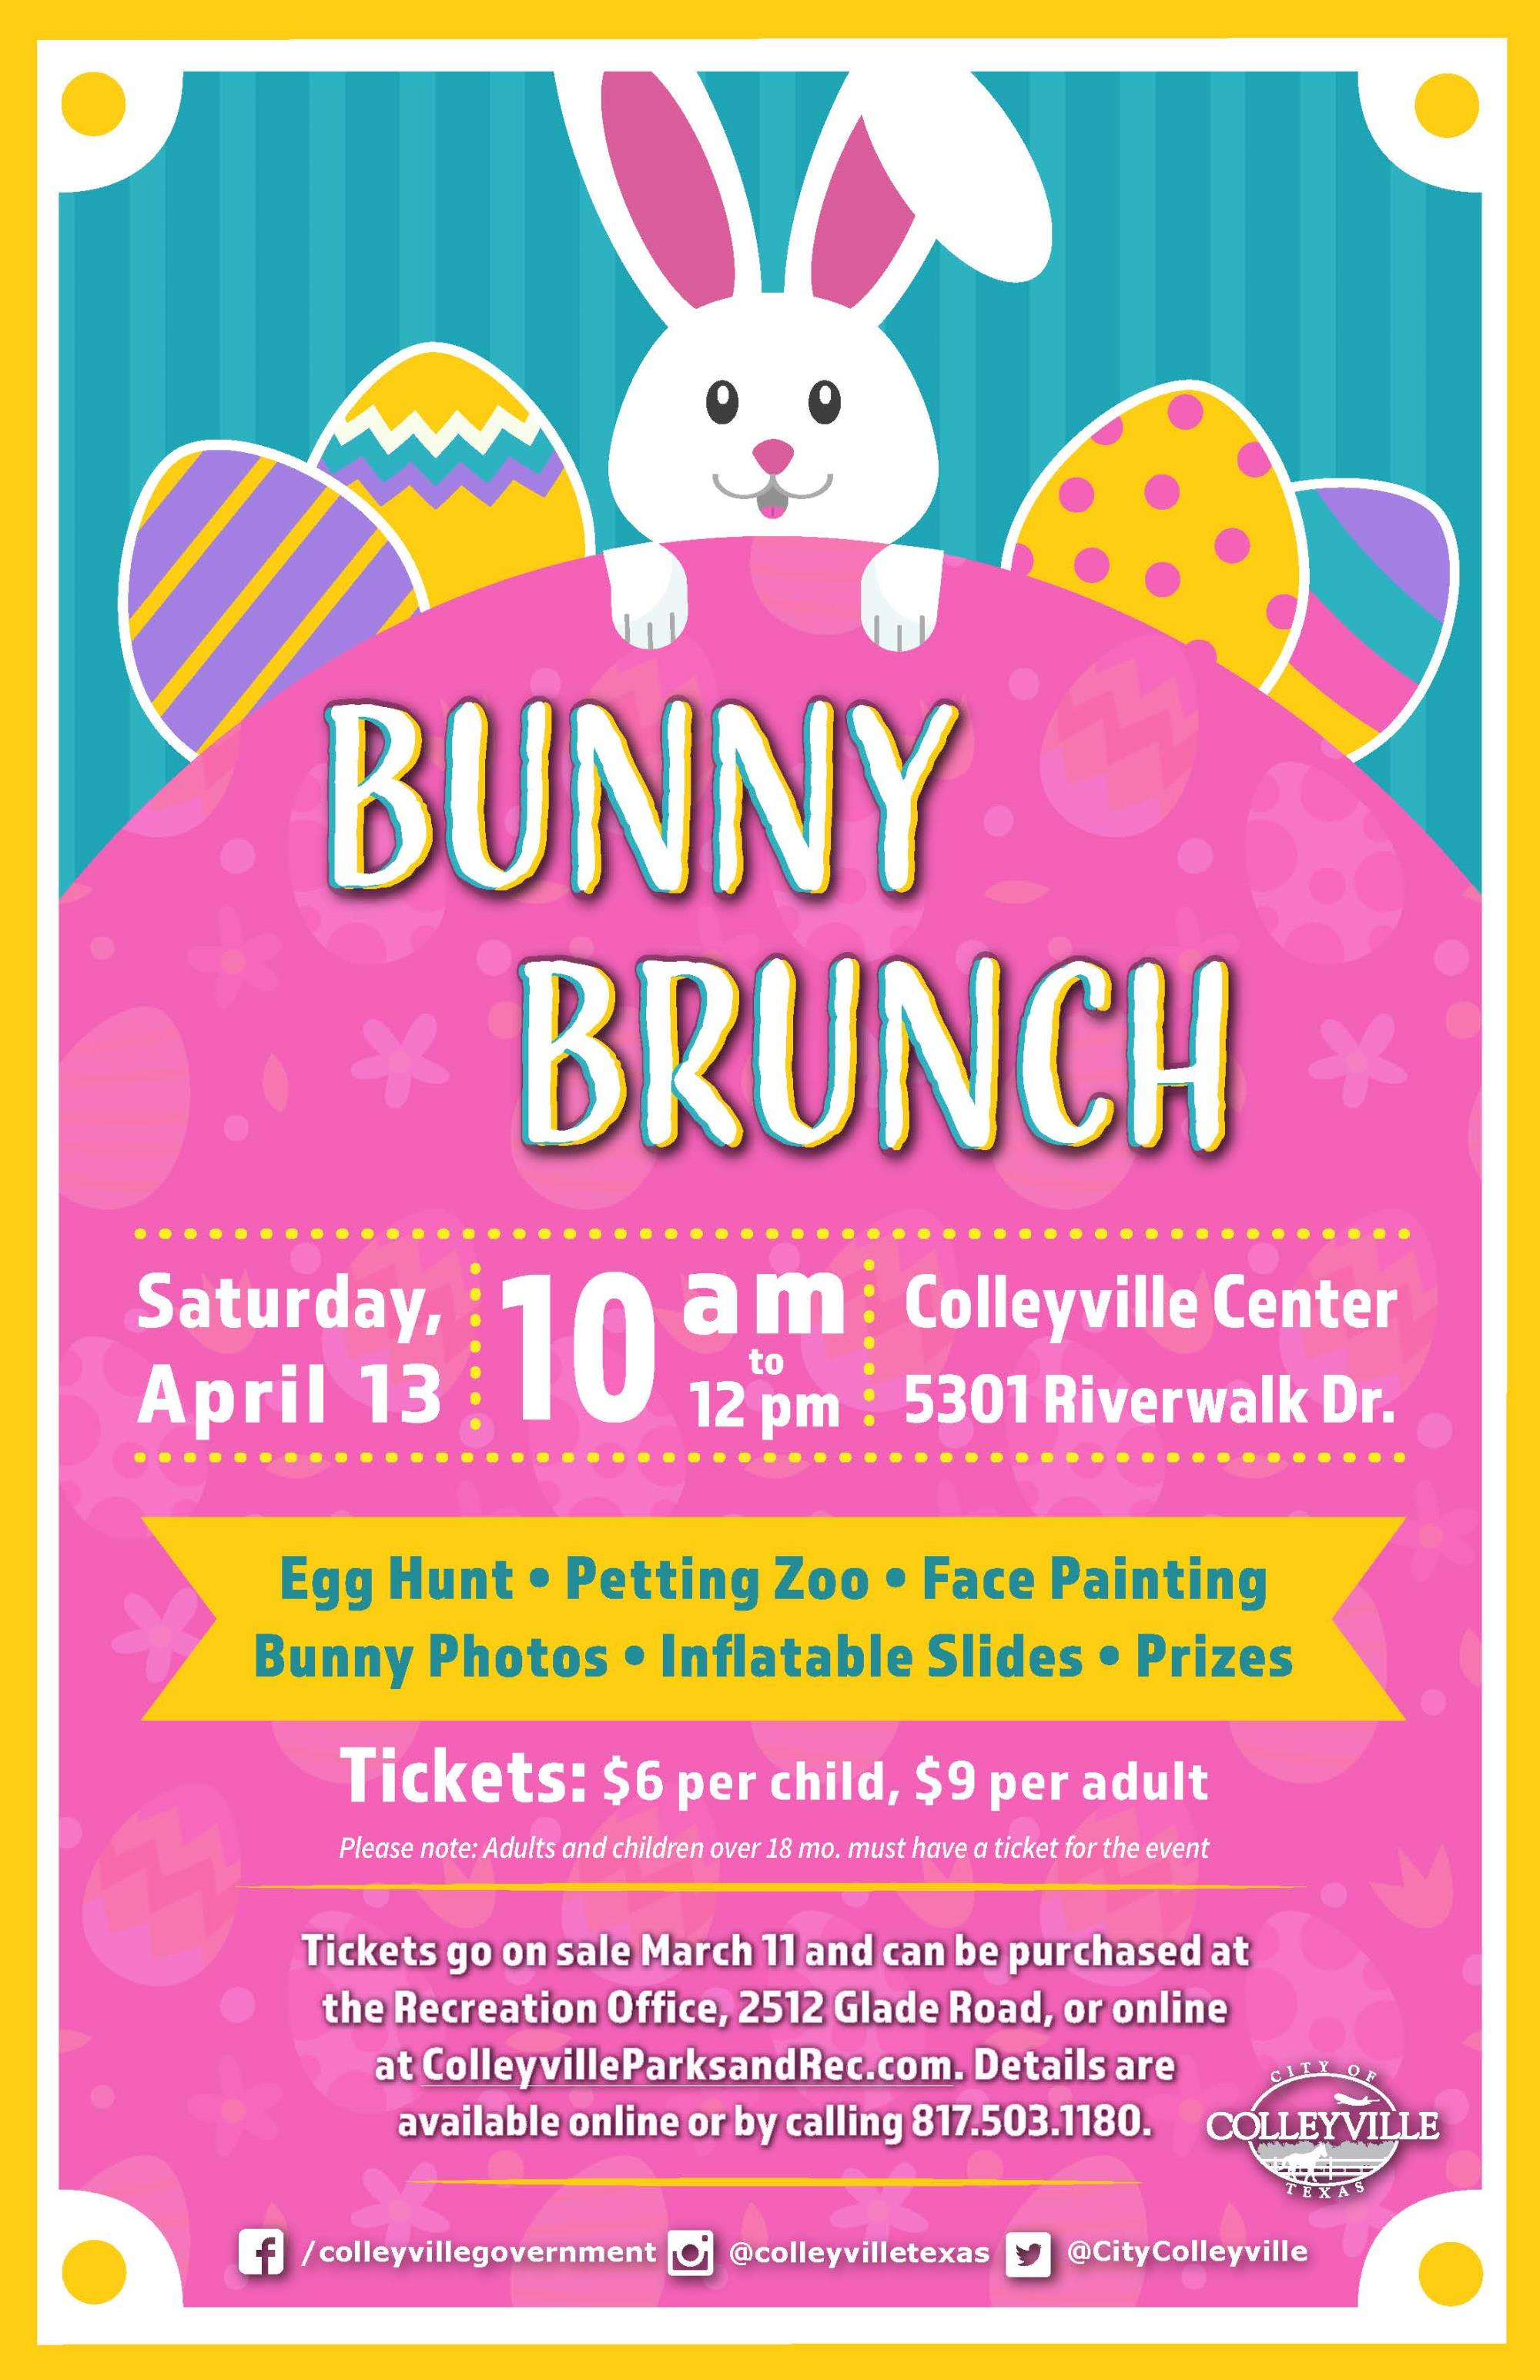 Bunny Brunch Tickets on Sale March 11